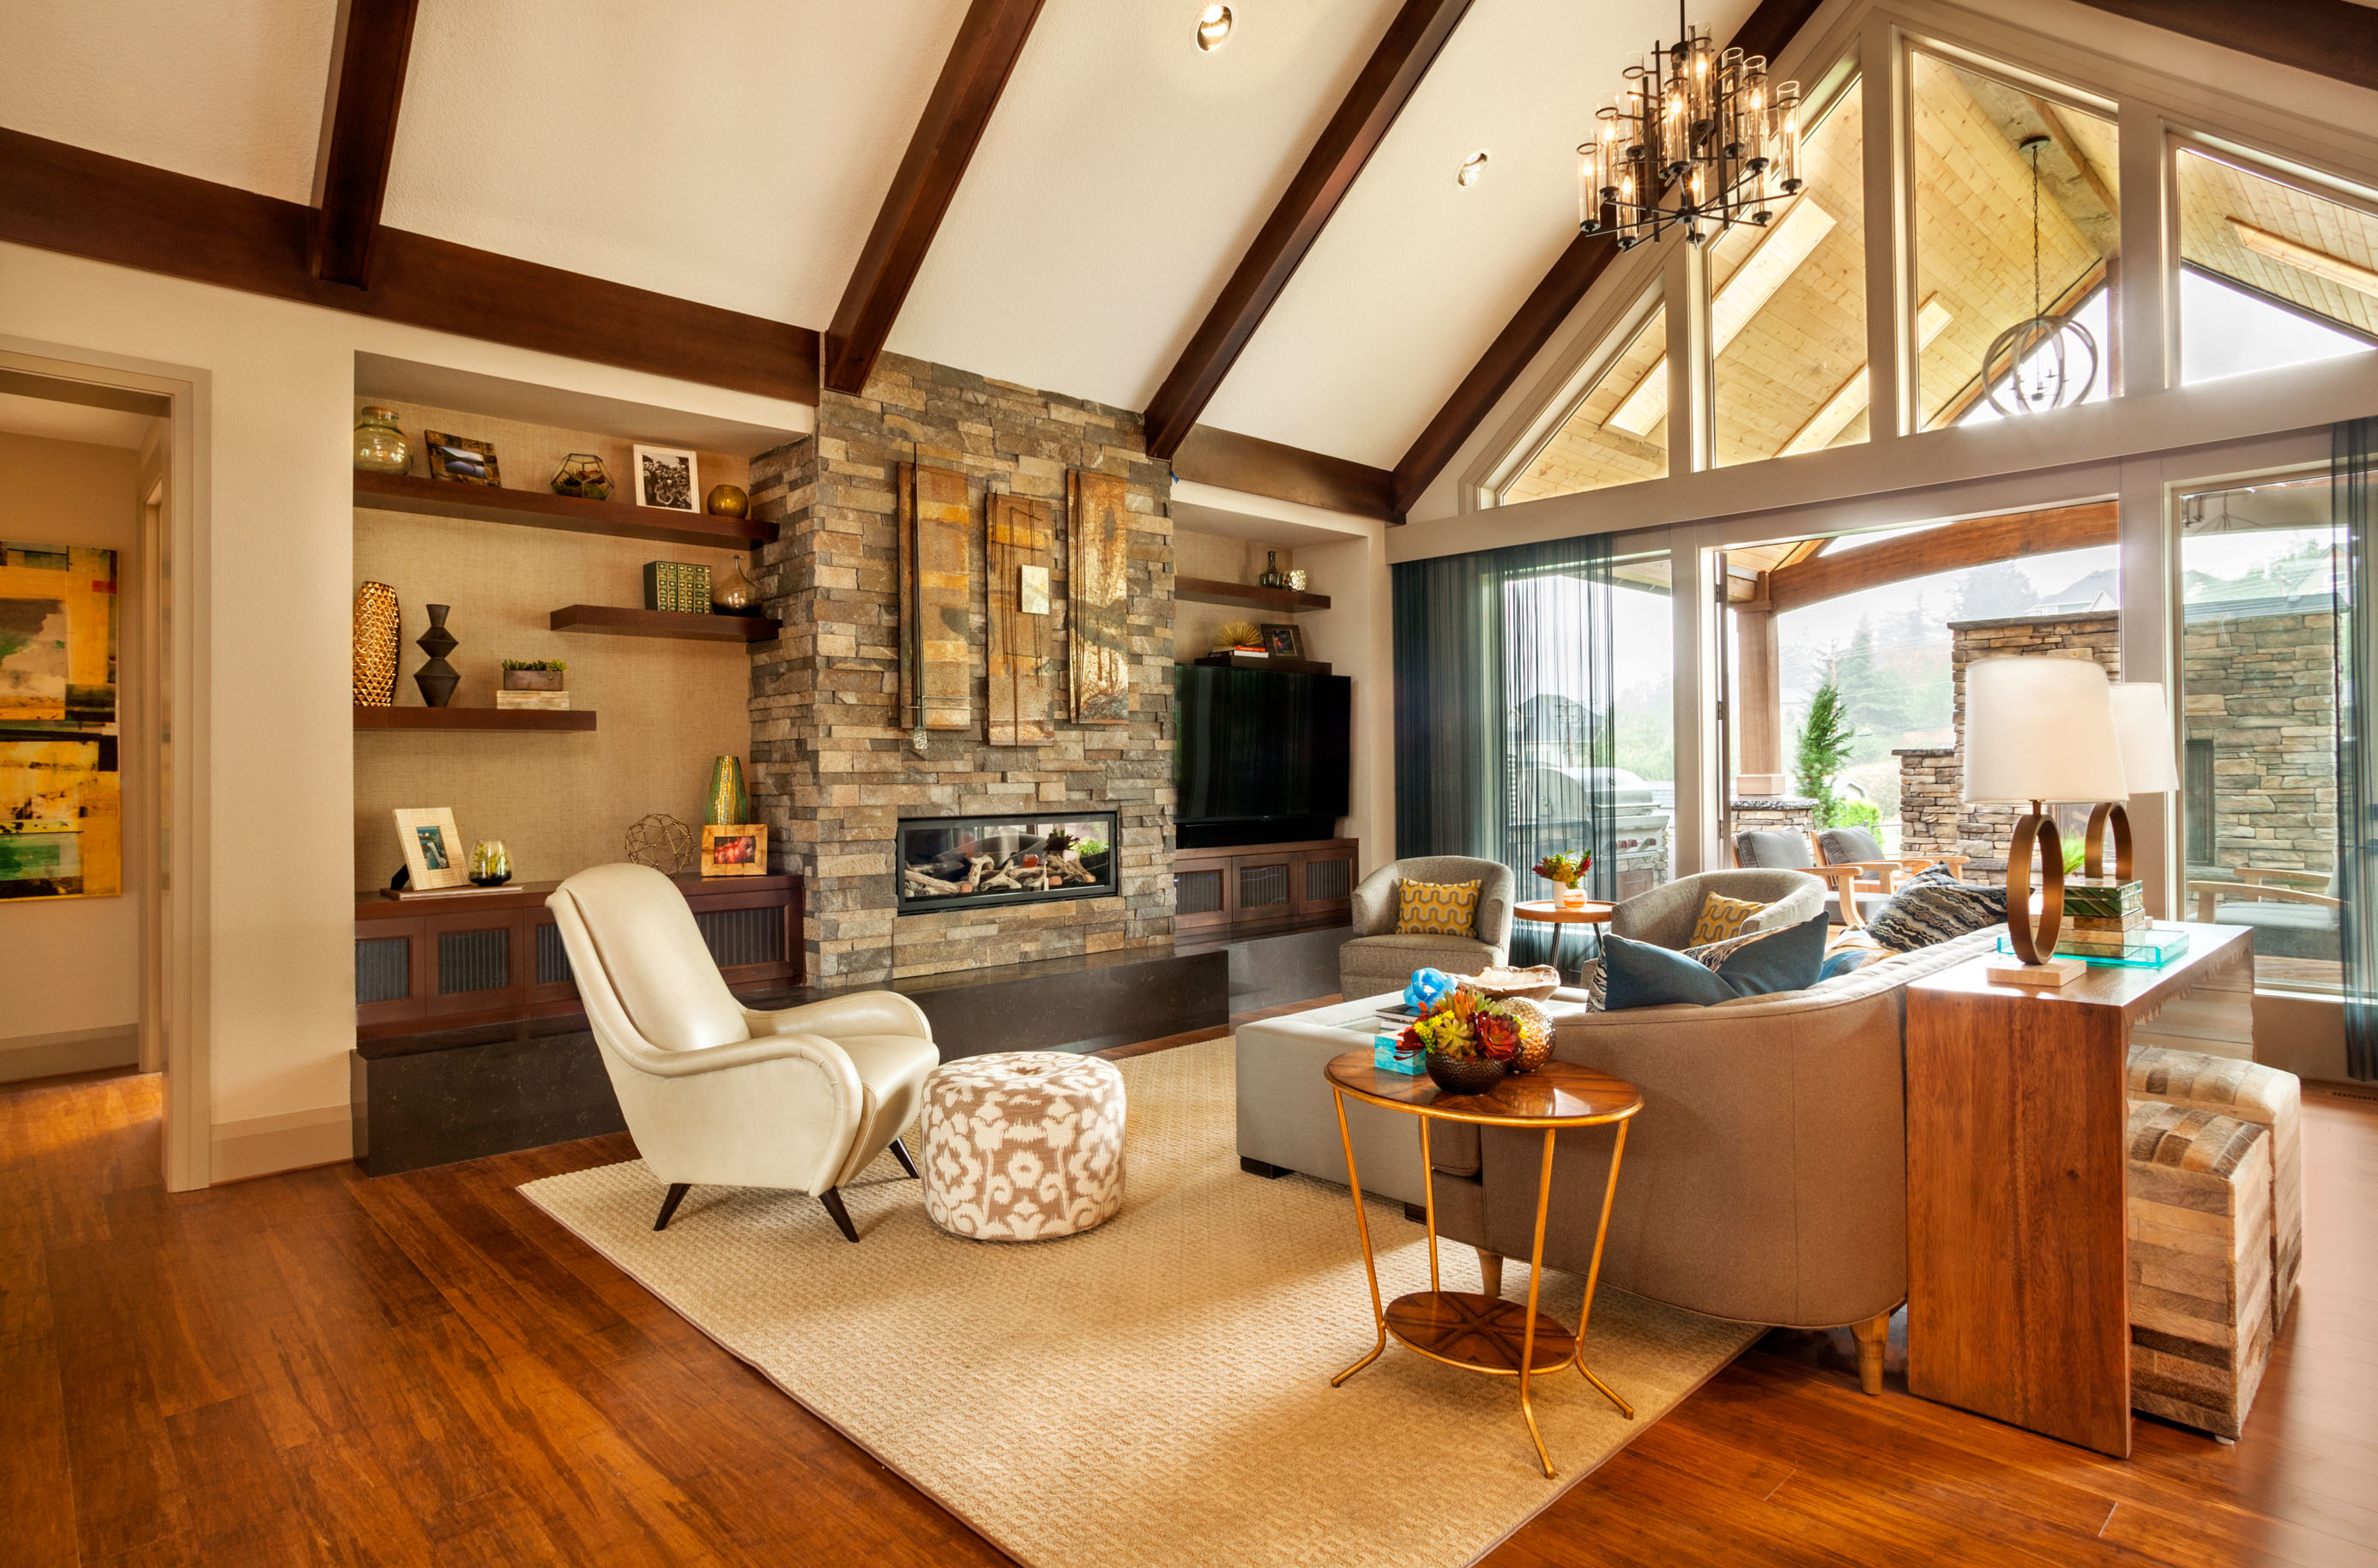 The Family Room Features Carefully Selectioned Decor.